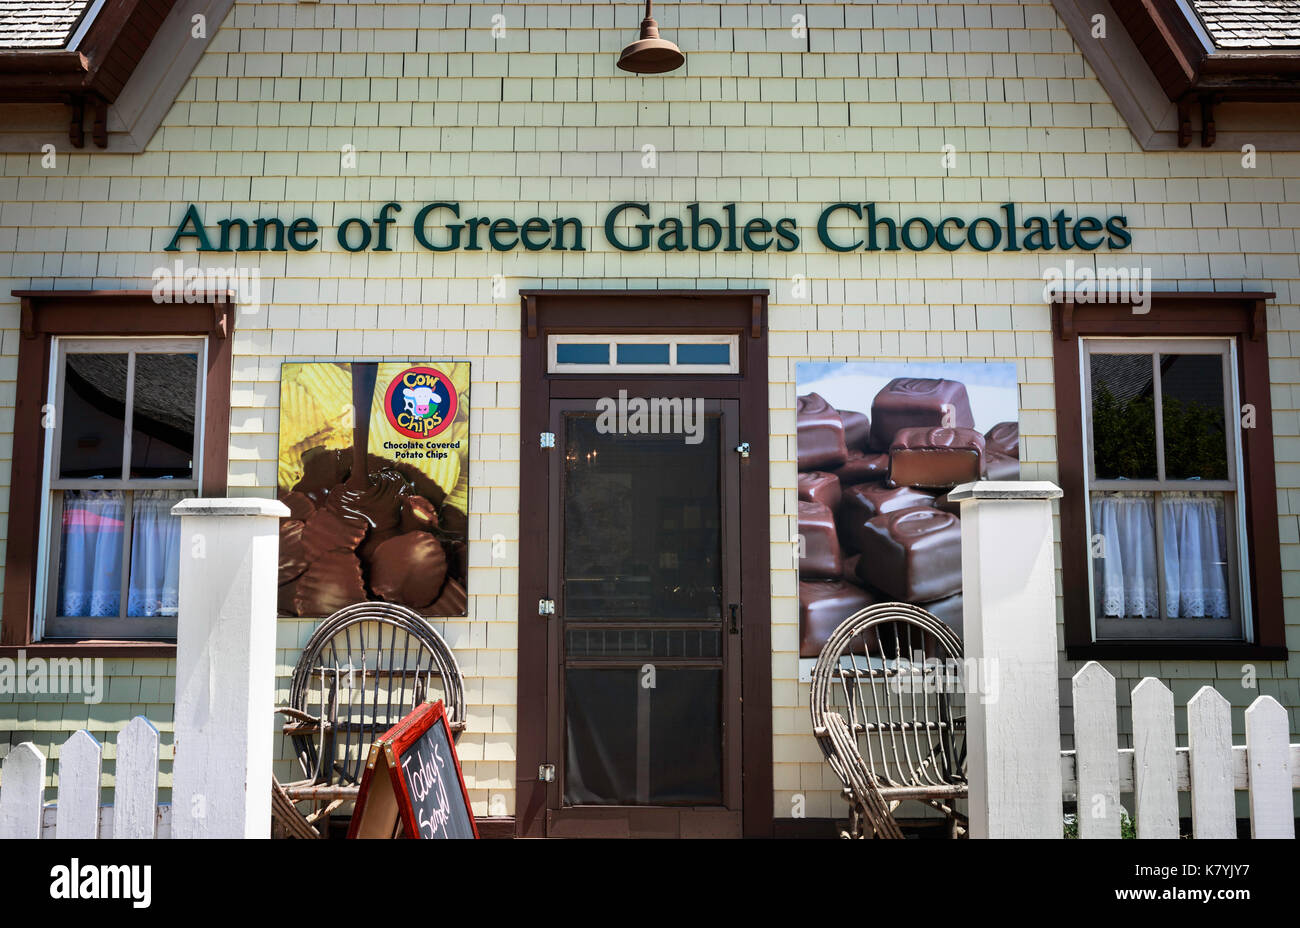 Anne of Green Gables Chocolates Store in Avonlea, PEI, Canada. 'Anne' novels were made famous in the early 1900s by fiction writer L.M. Montgomery - Stock Image